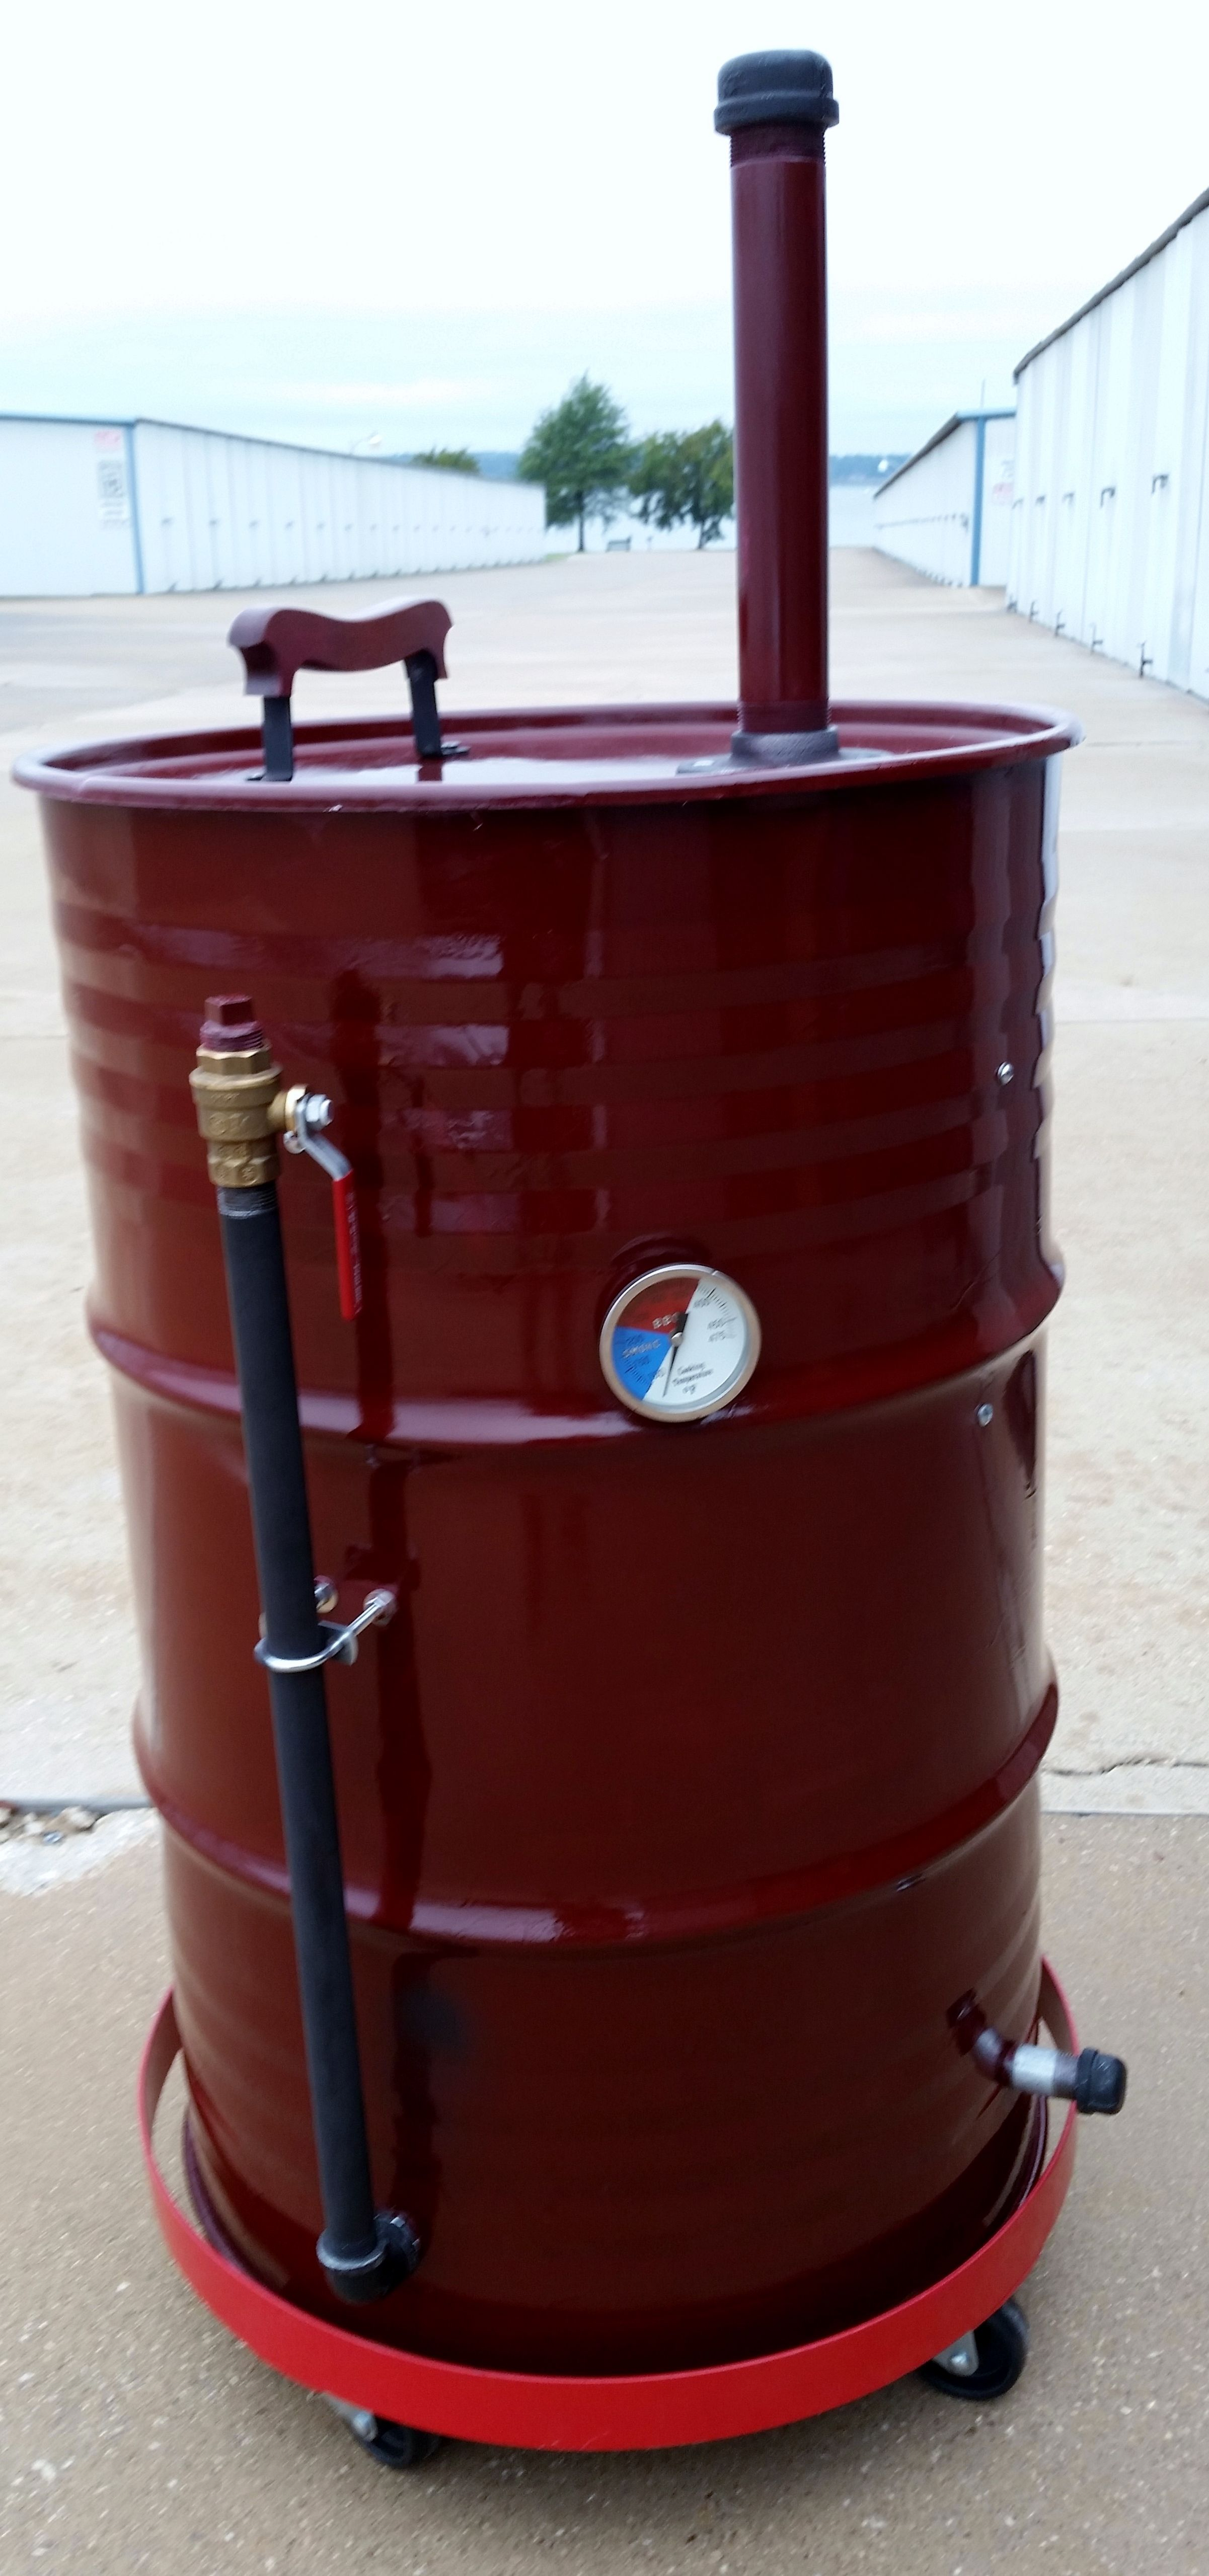 BBQ Smokers | Lake Conroe Smokers | Uds smoker, Charcoal